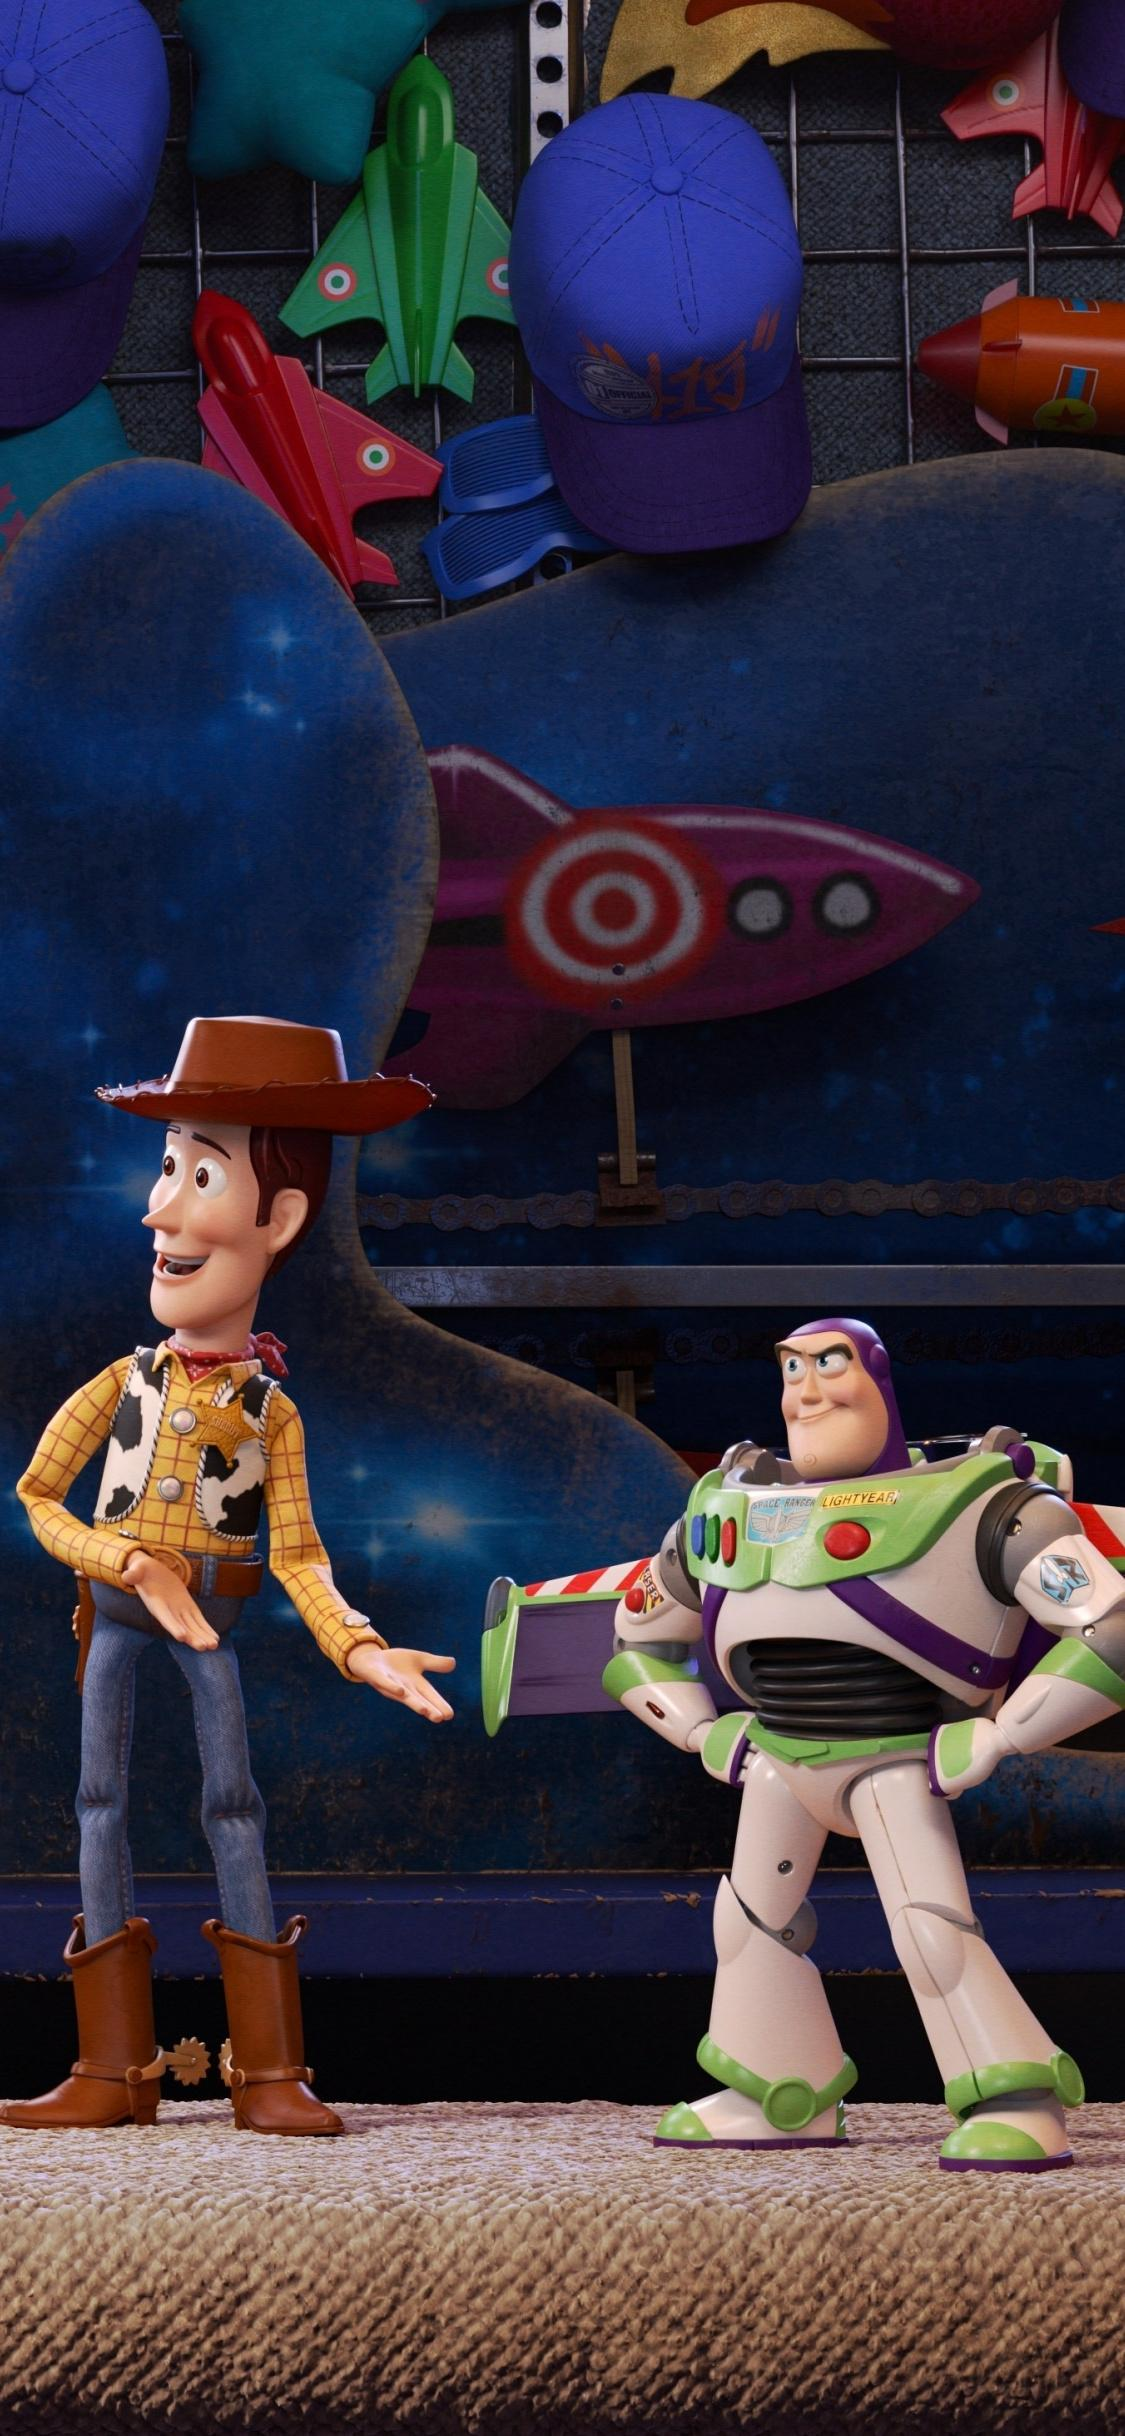 Download 1125x2436 wallpapers toy story 4, woody, buzz